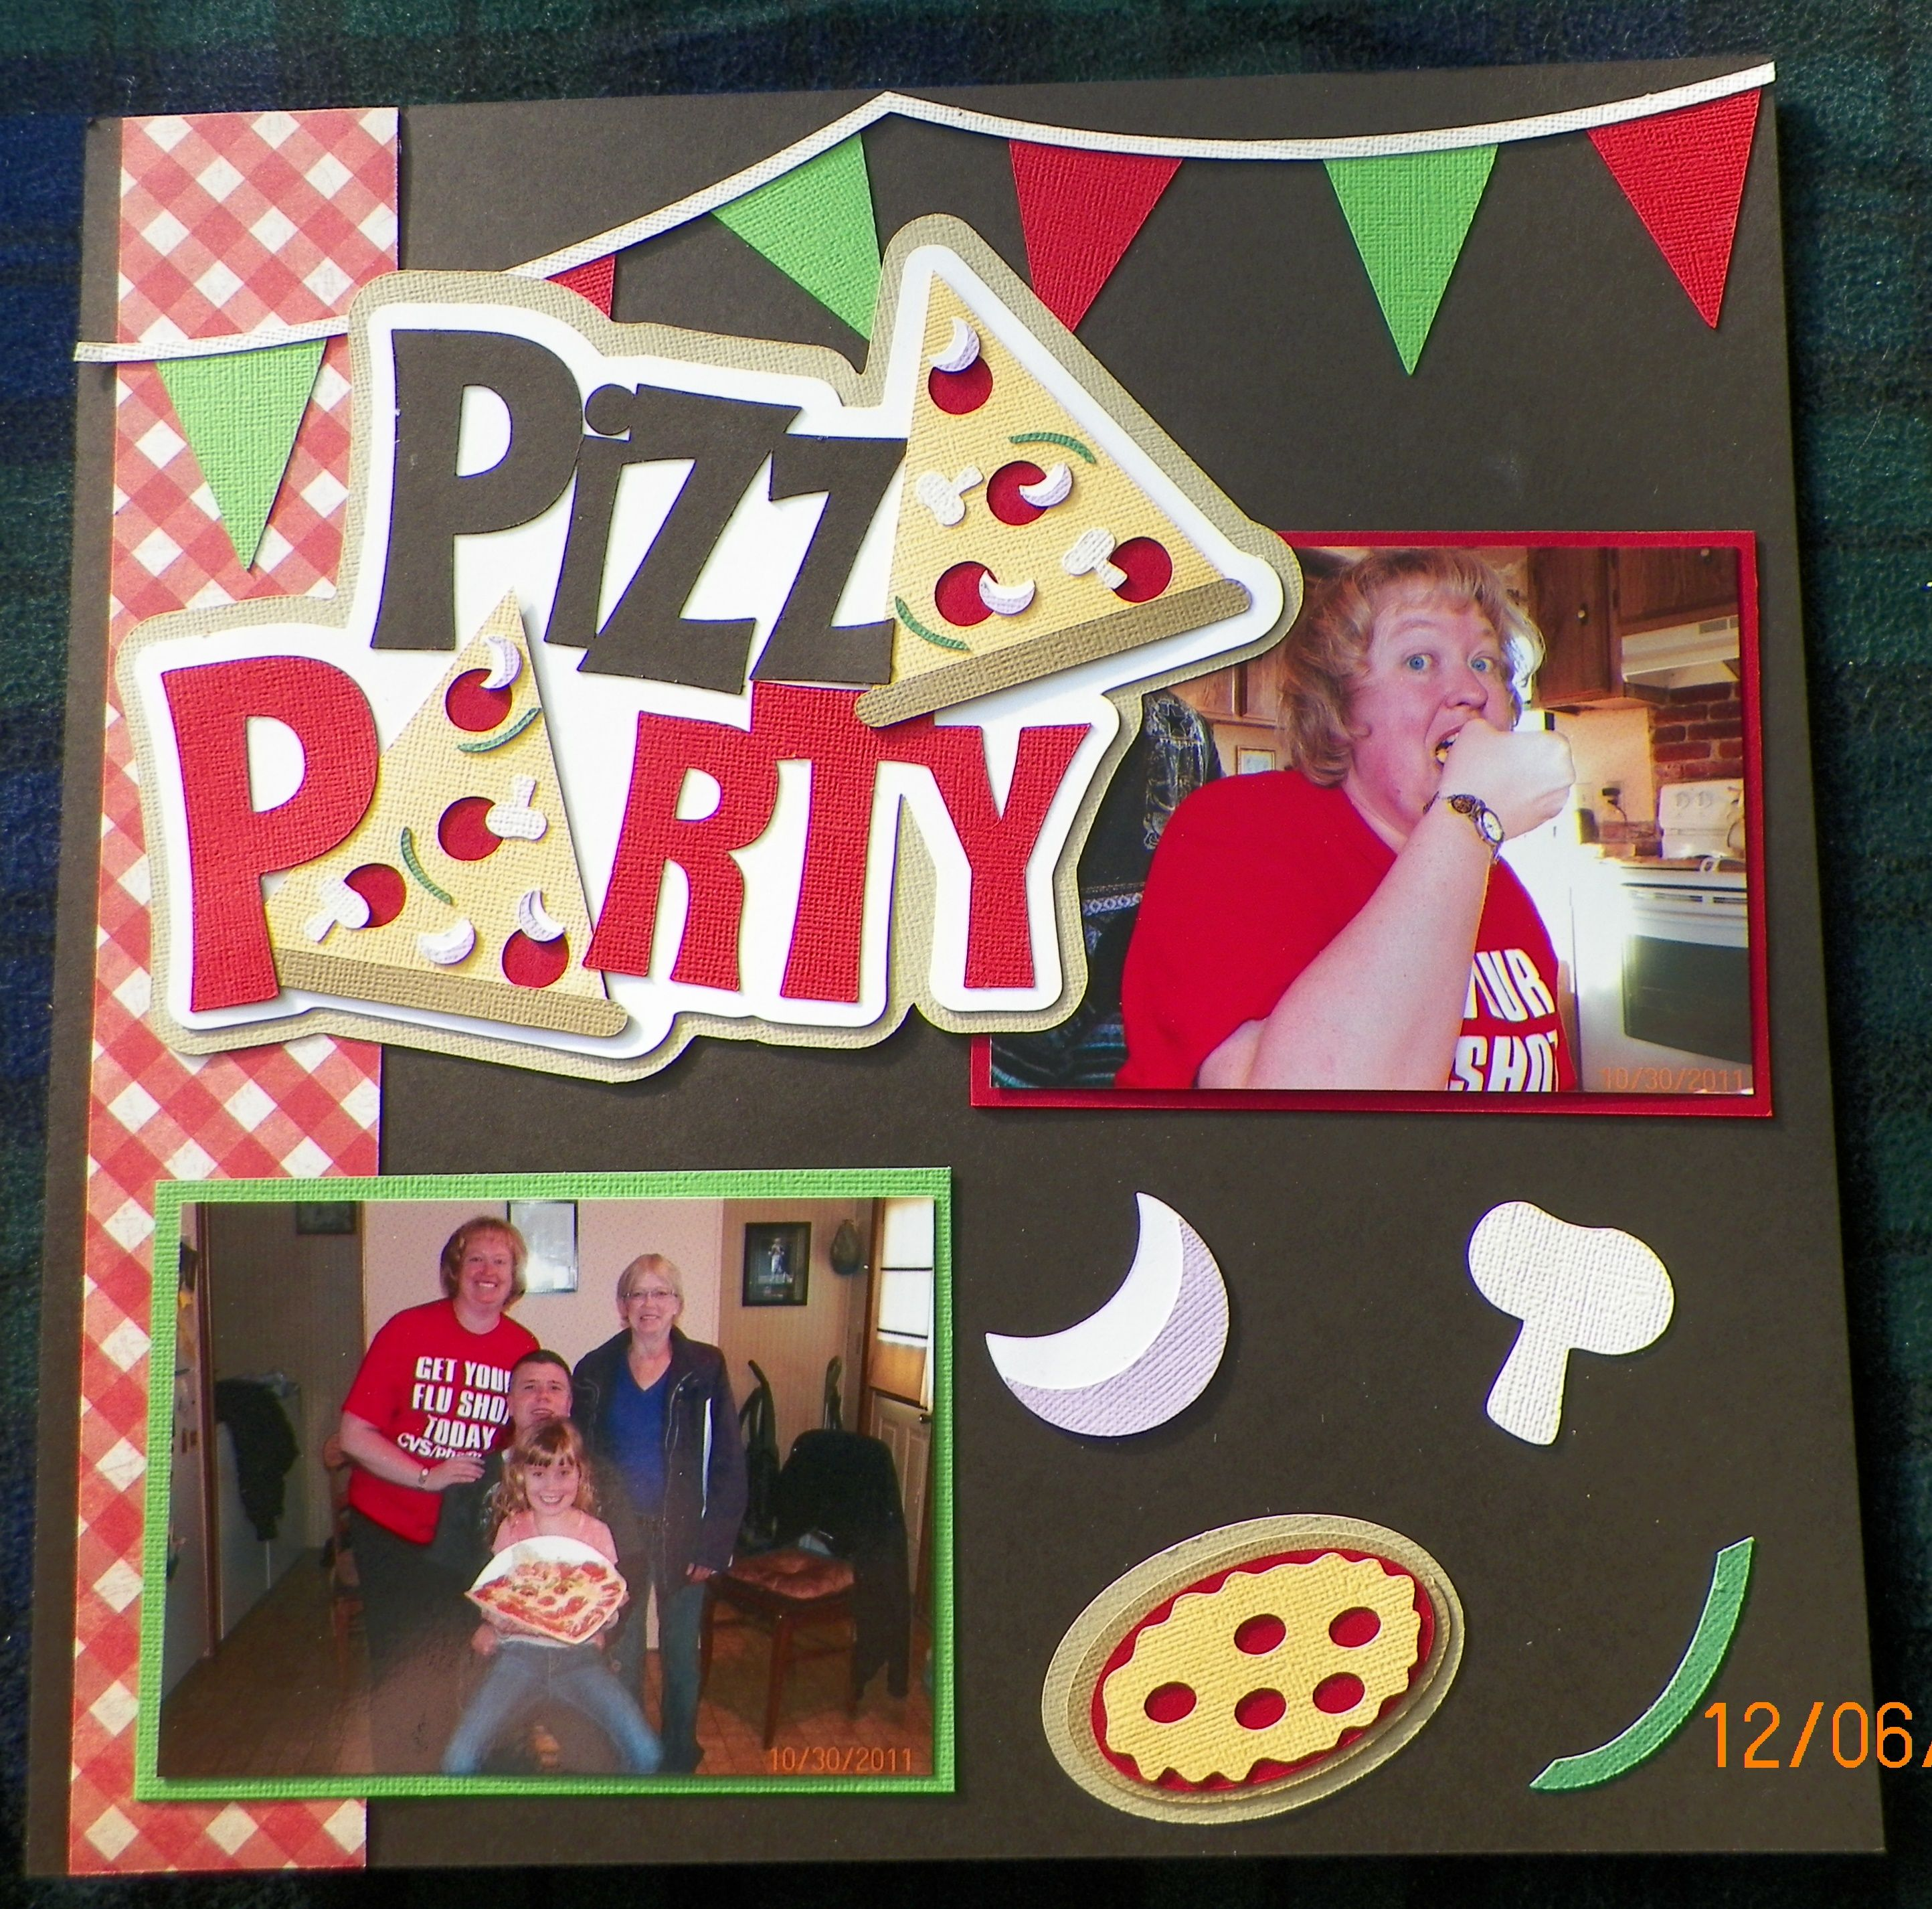 Pizza party scrapbook page simple design scrapbooking junkie birthday scrapbook pages kids scrapbook graduation scrapbook